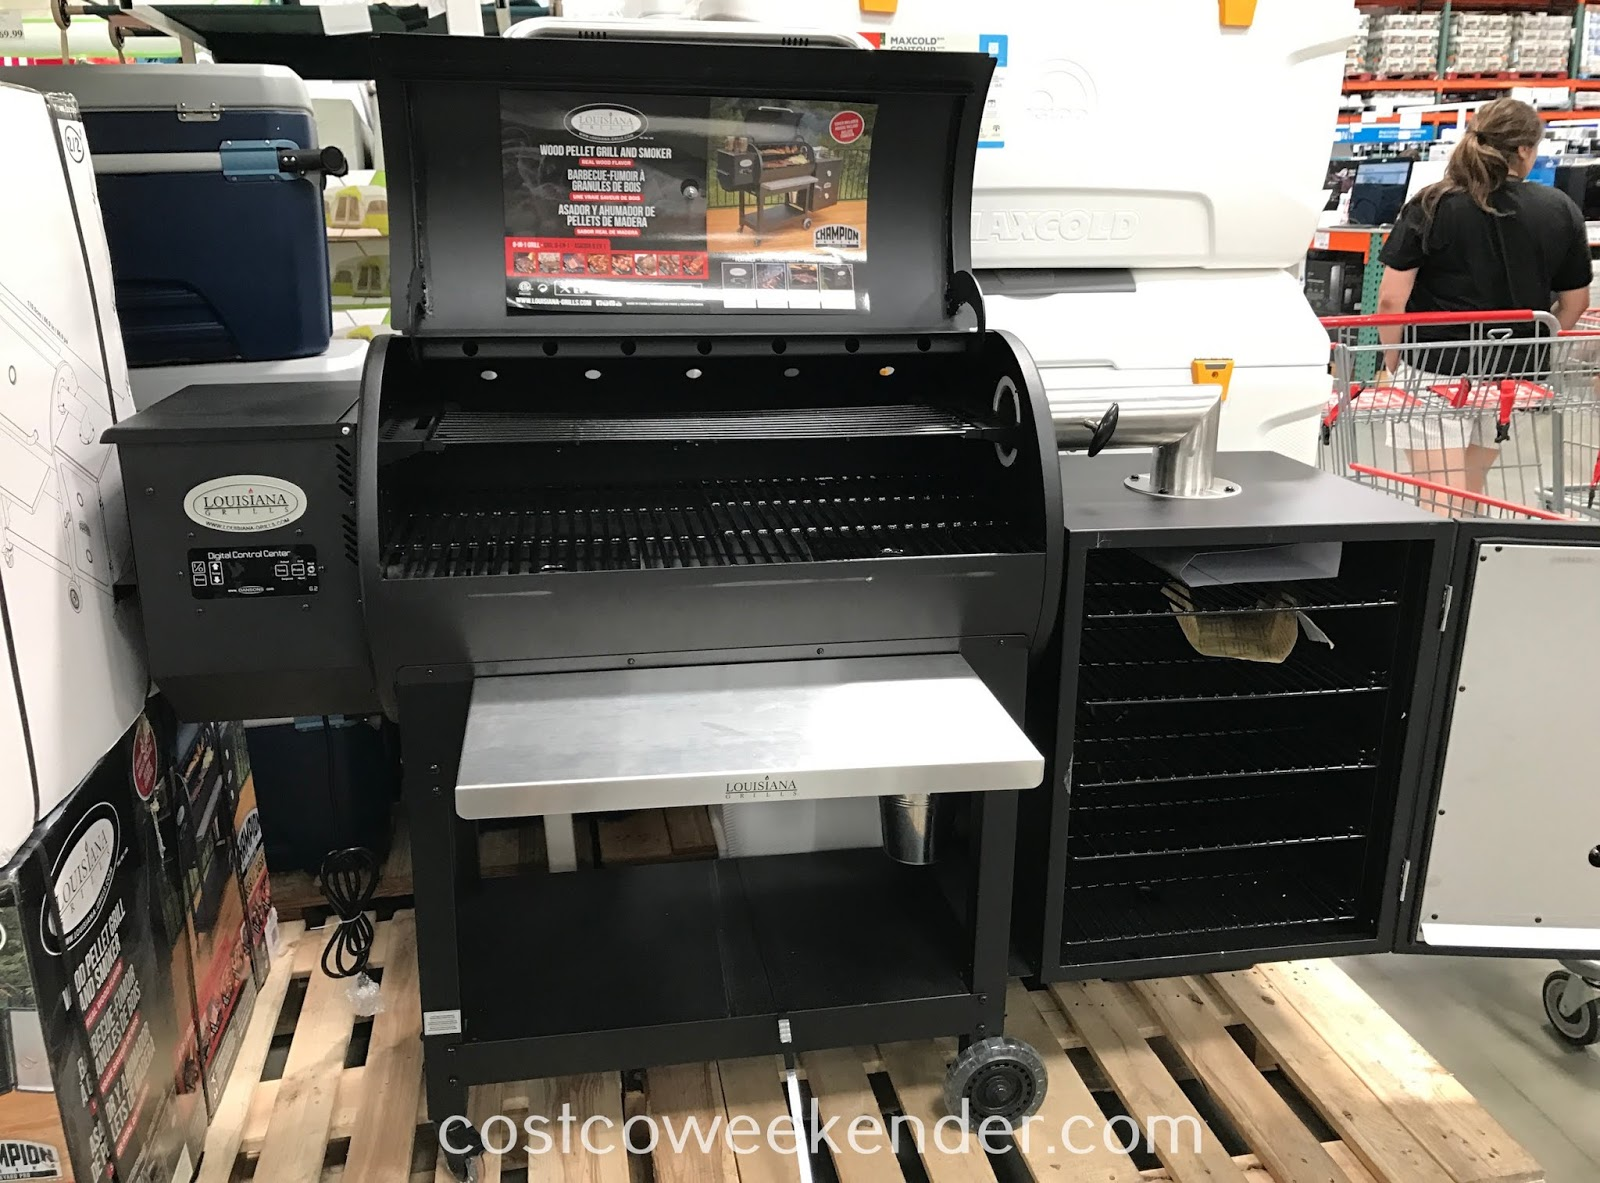 Costco 1500153 - Louisiana Grills Wood Pellet Grill and Smoker is way easier to use than a charcoal grill or smoker